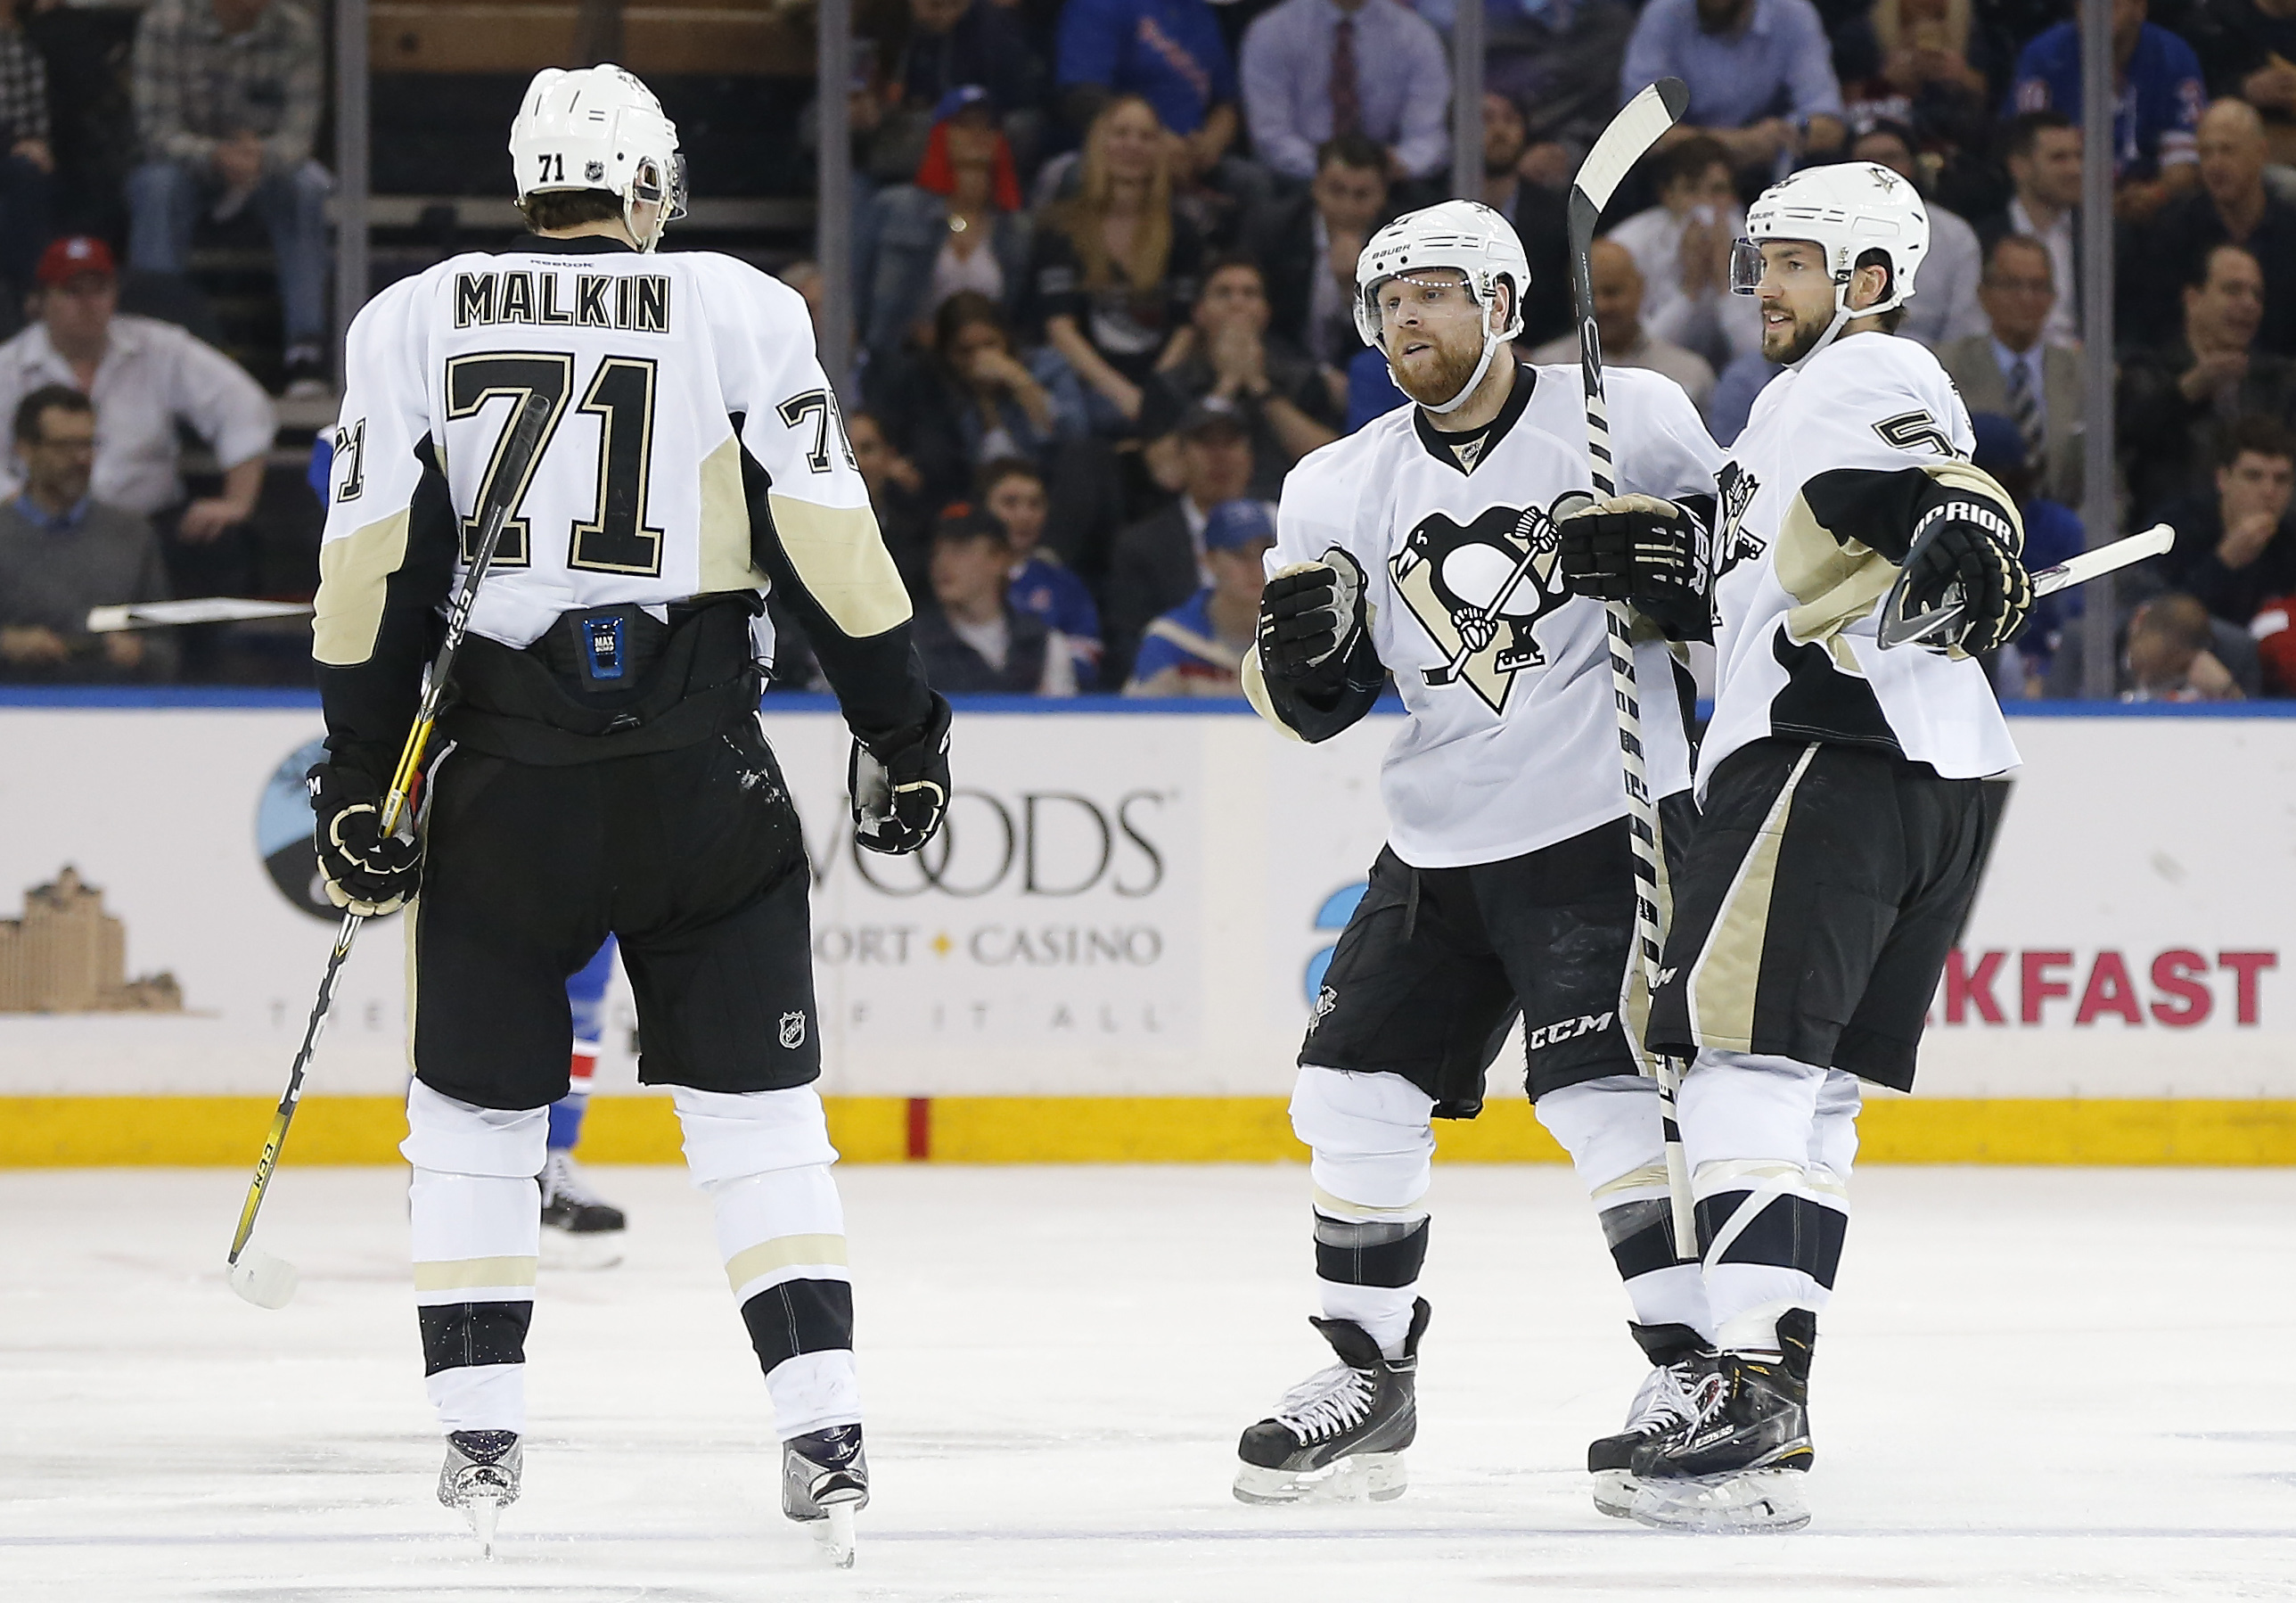 Pittsburgh Penguins defenseman Kris Letang, right, and right wing Phil Kessel, center, celebrate with center Evgeni Malkin (71) after Malkin scored a goal against the New York Rangers during the second period of Game 4 of an NHL hockey first-round Stanley